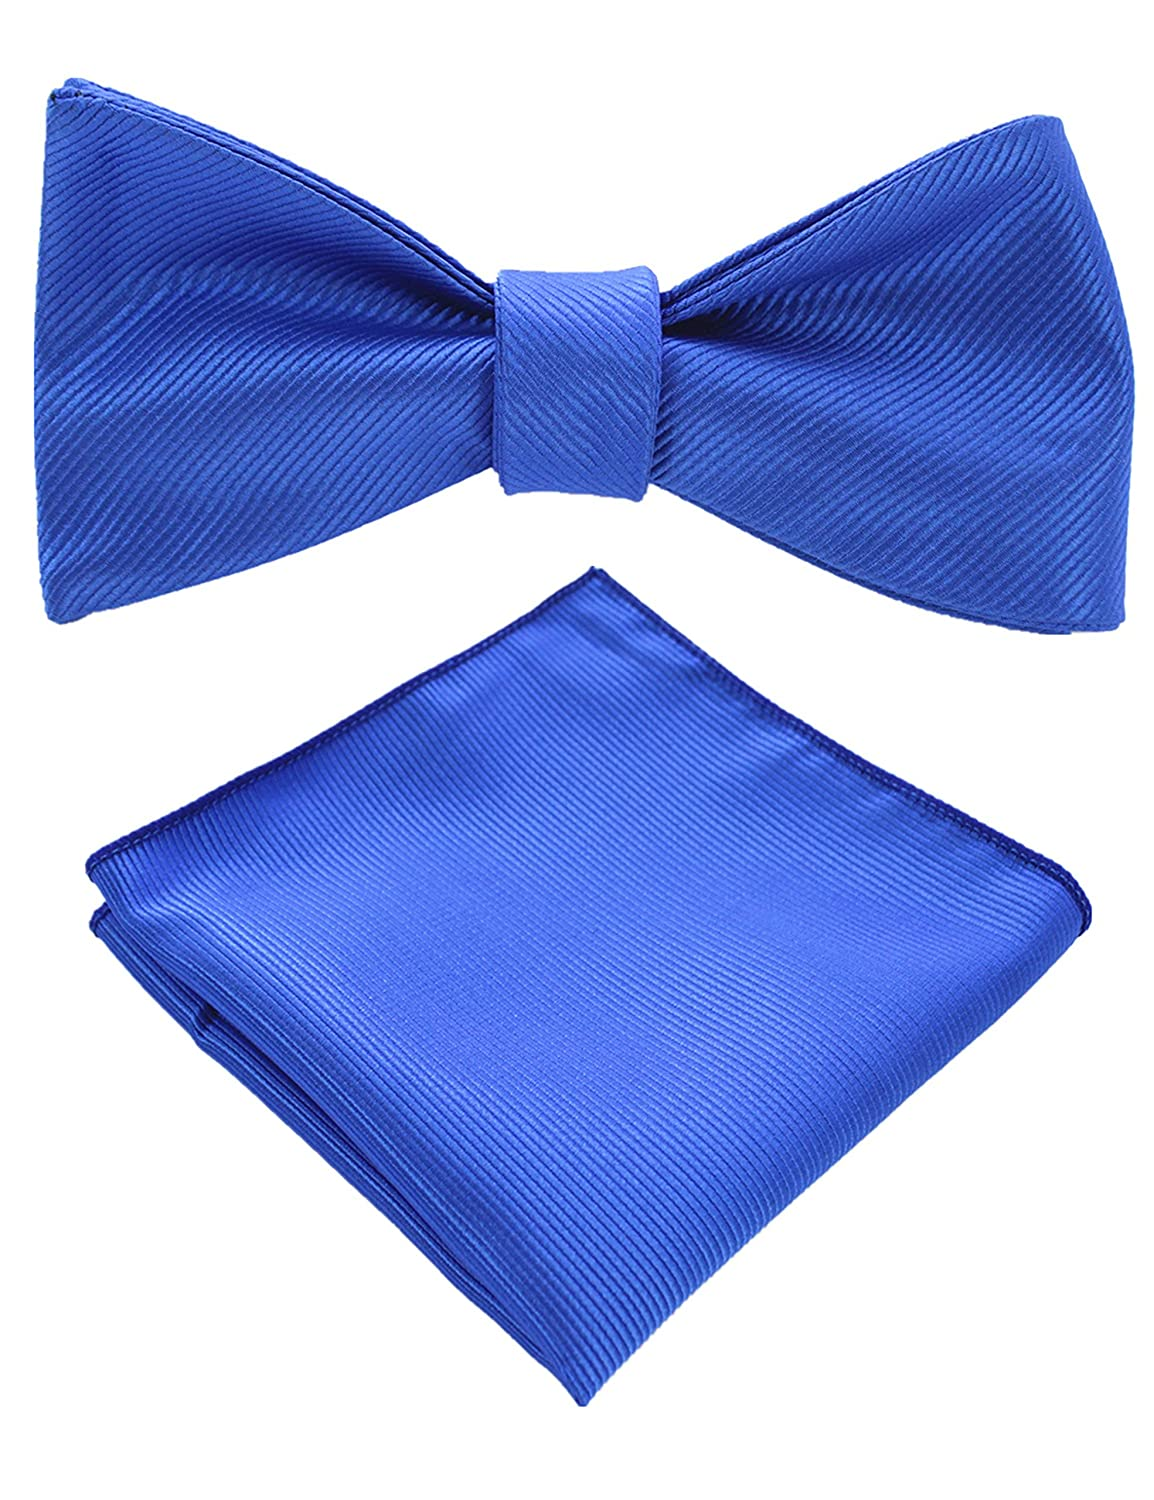 10 Colors JEMYGINS Mens Formal Bowtie Solid Self Tie Bow Tie and Pocket Square Set